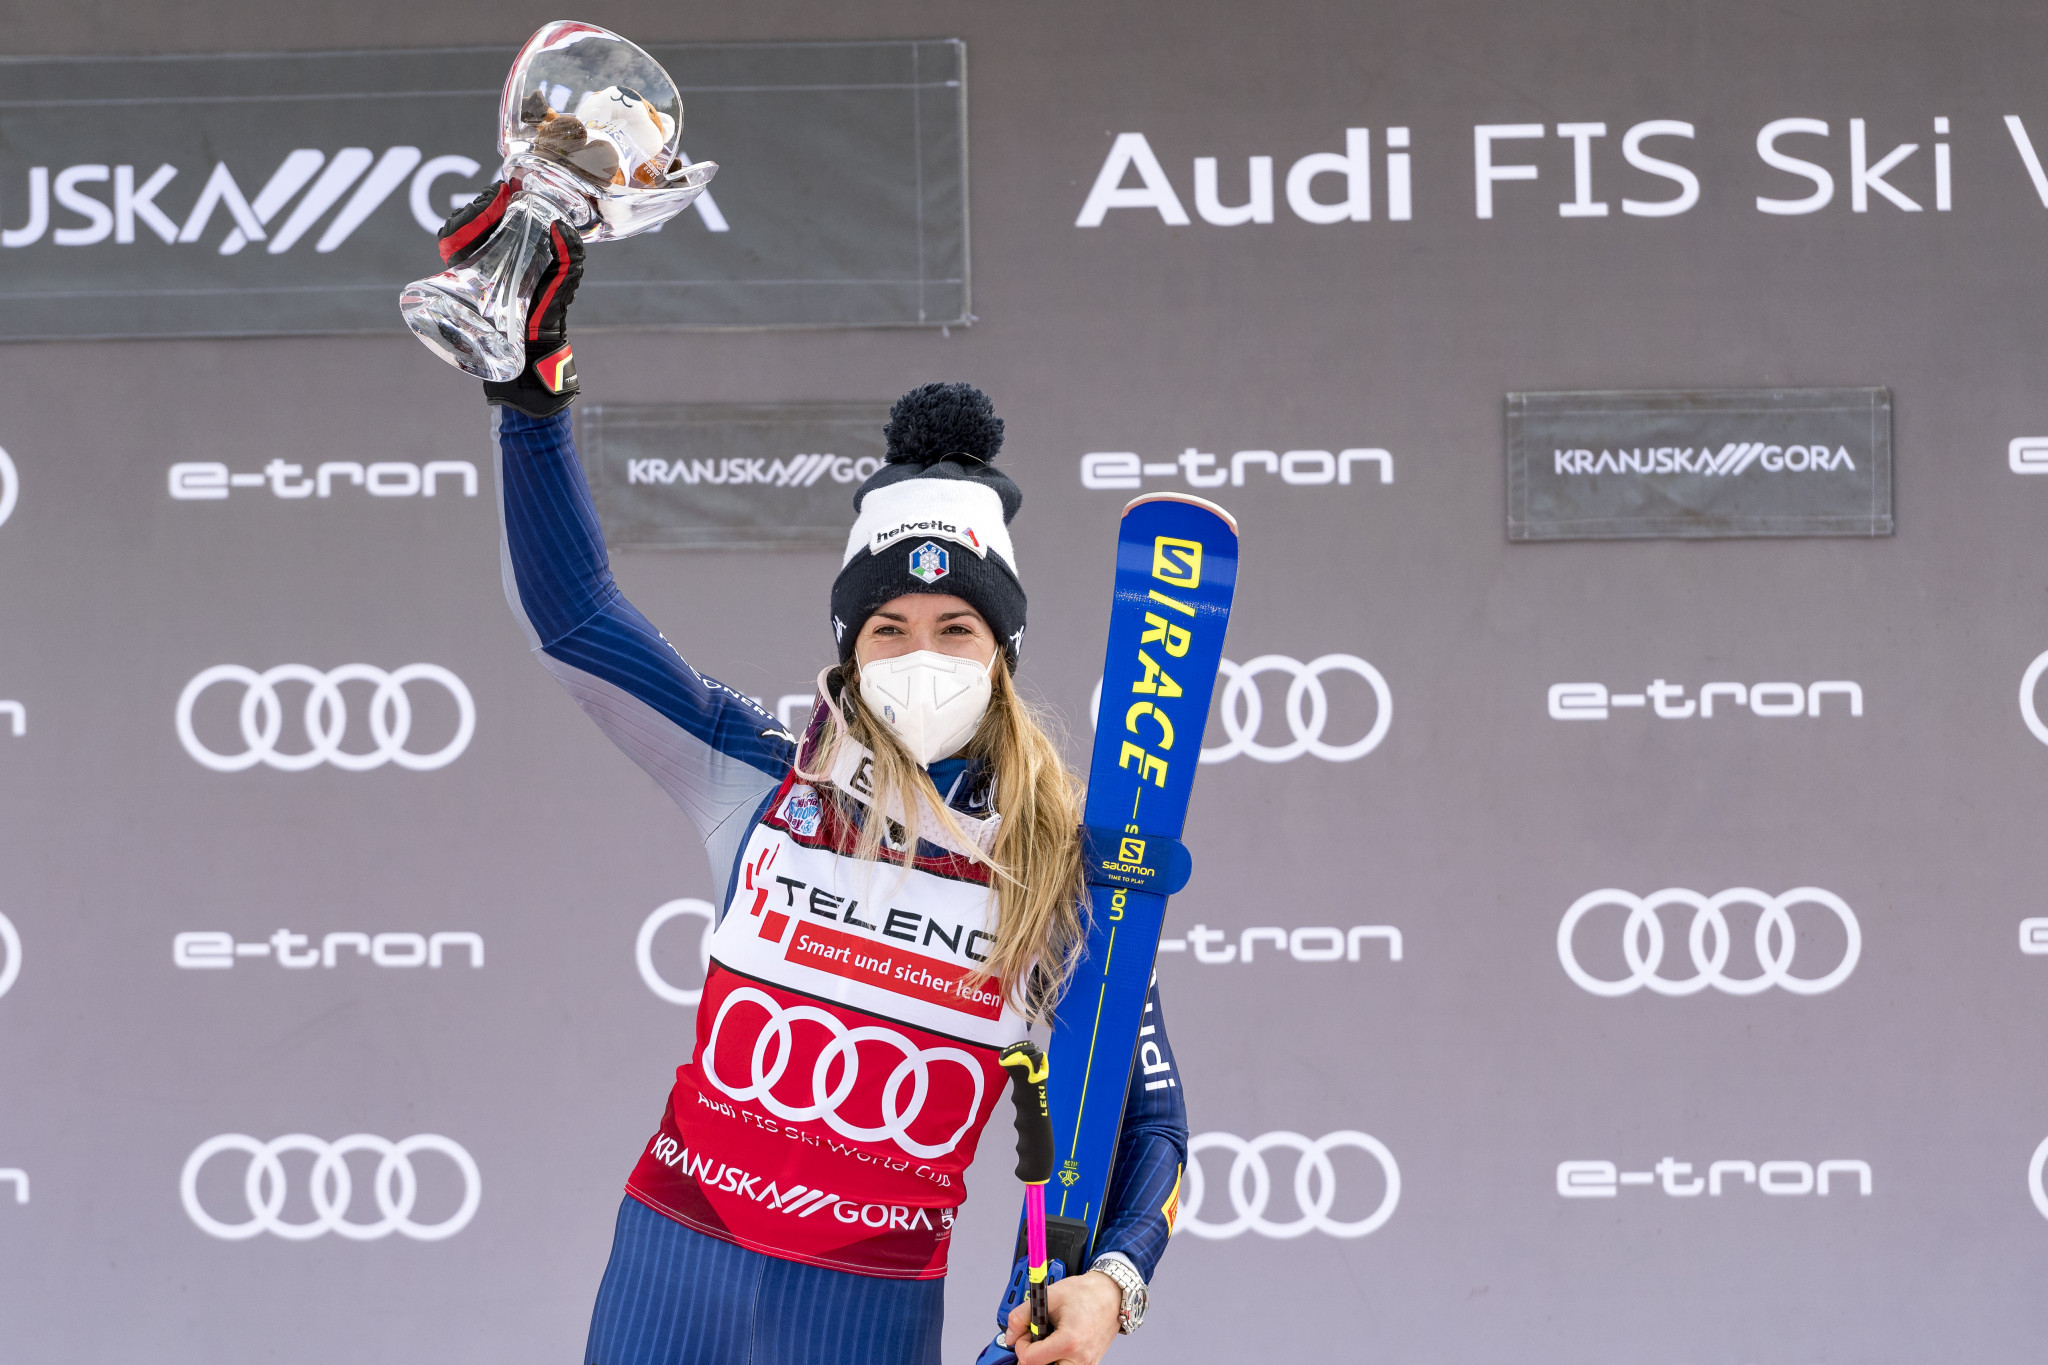 Marta Bassino extended her lead in the giant slalom World Cup standings ©Getty Images